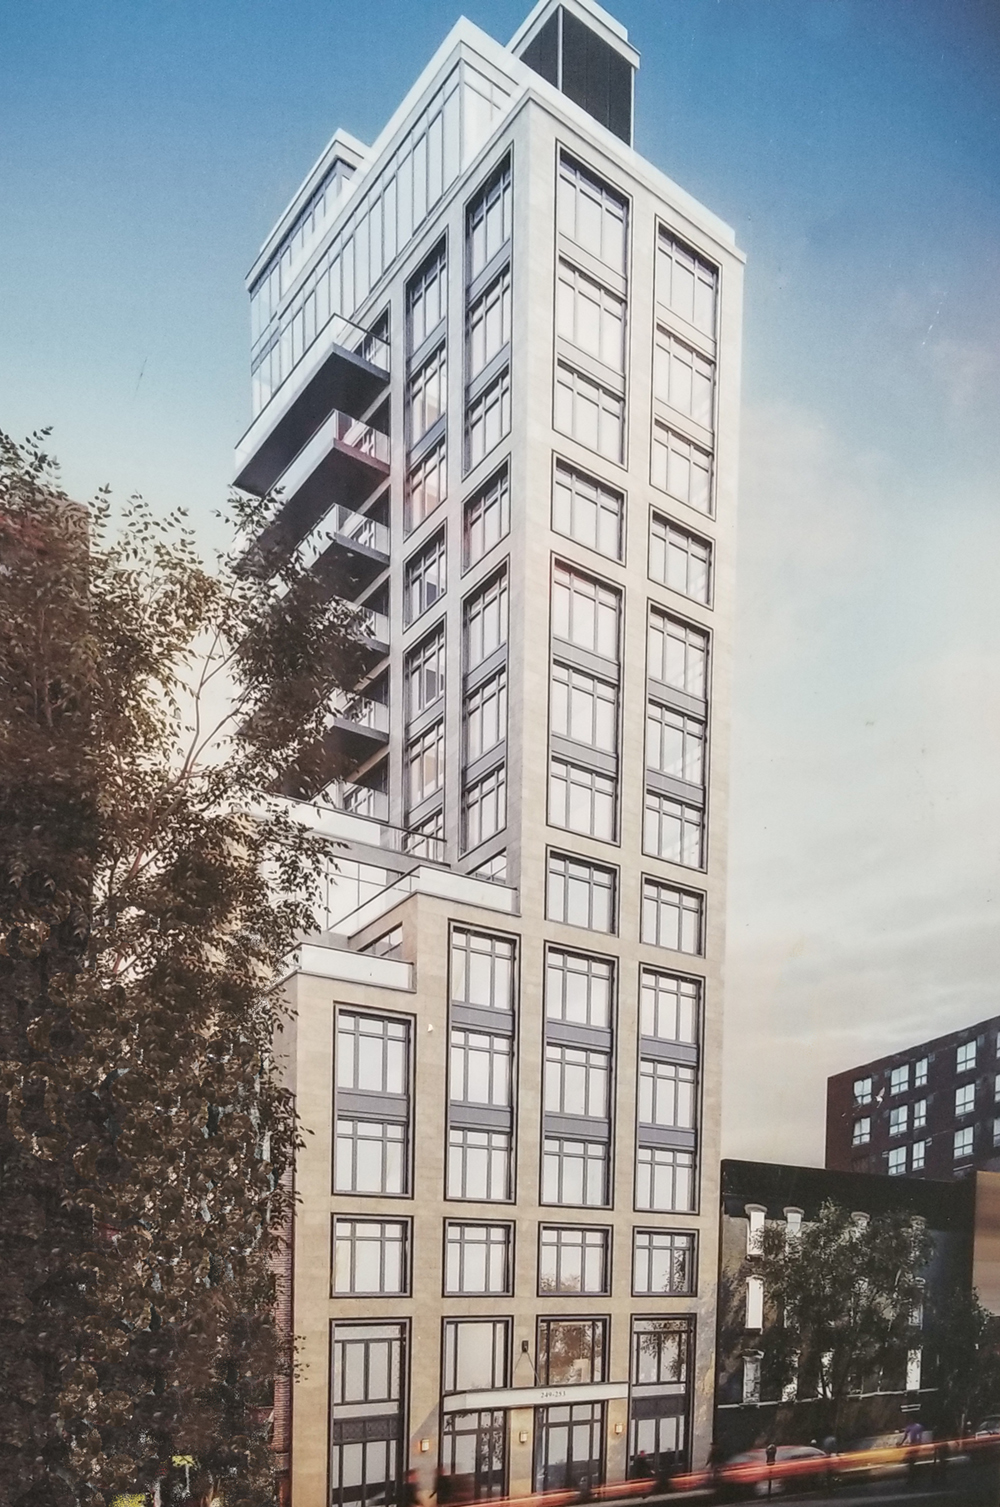 Excavation Begins at 249 East 50th Street, in Midtown - New York YIMBY